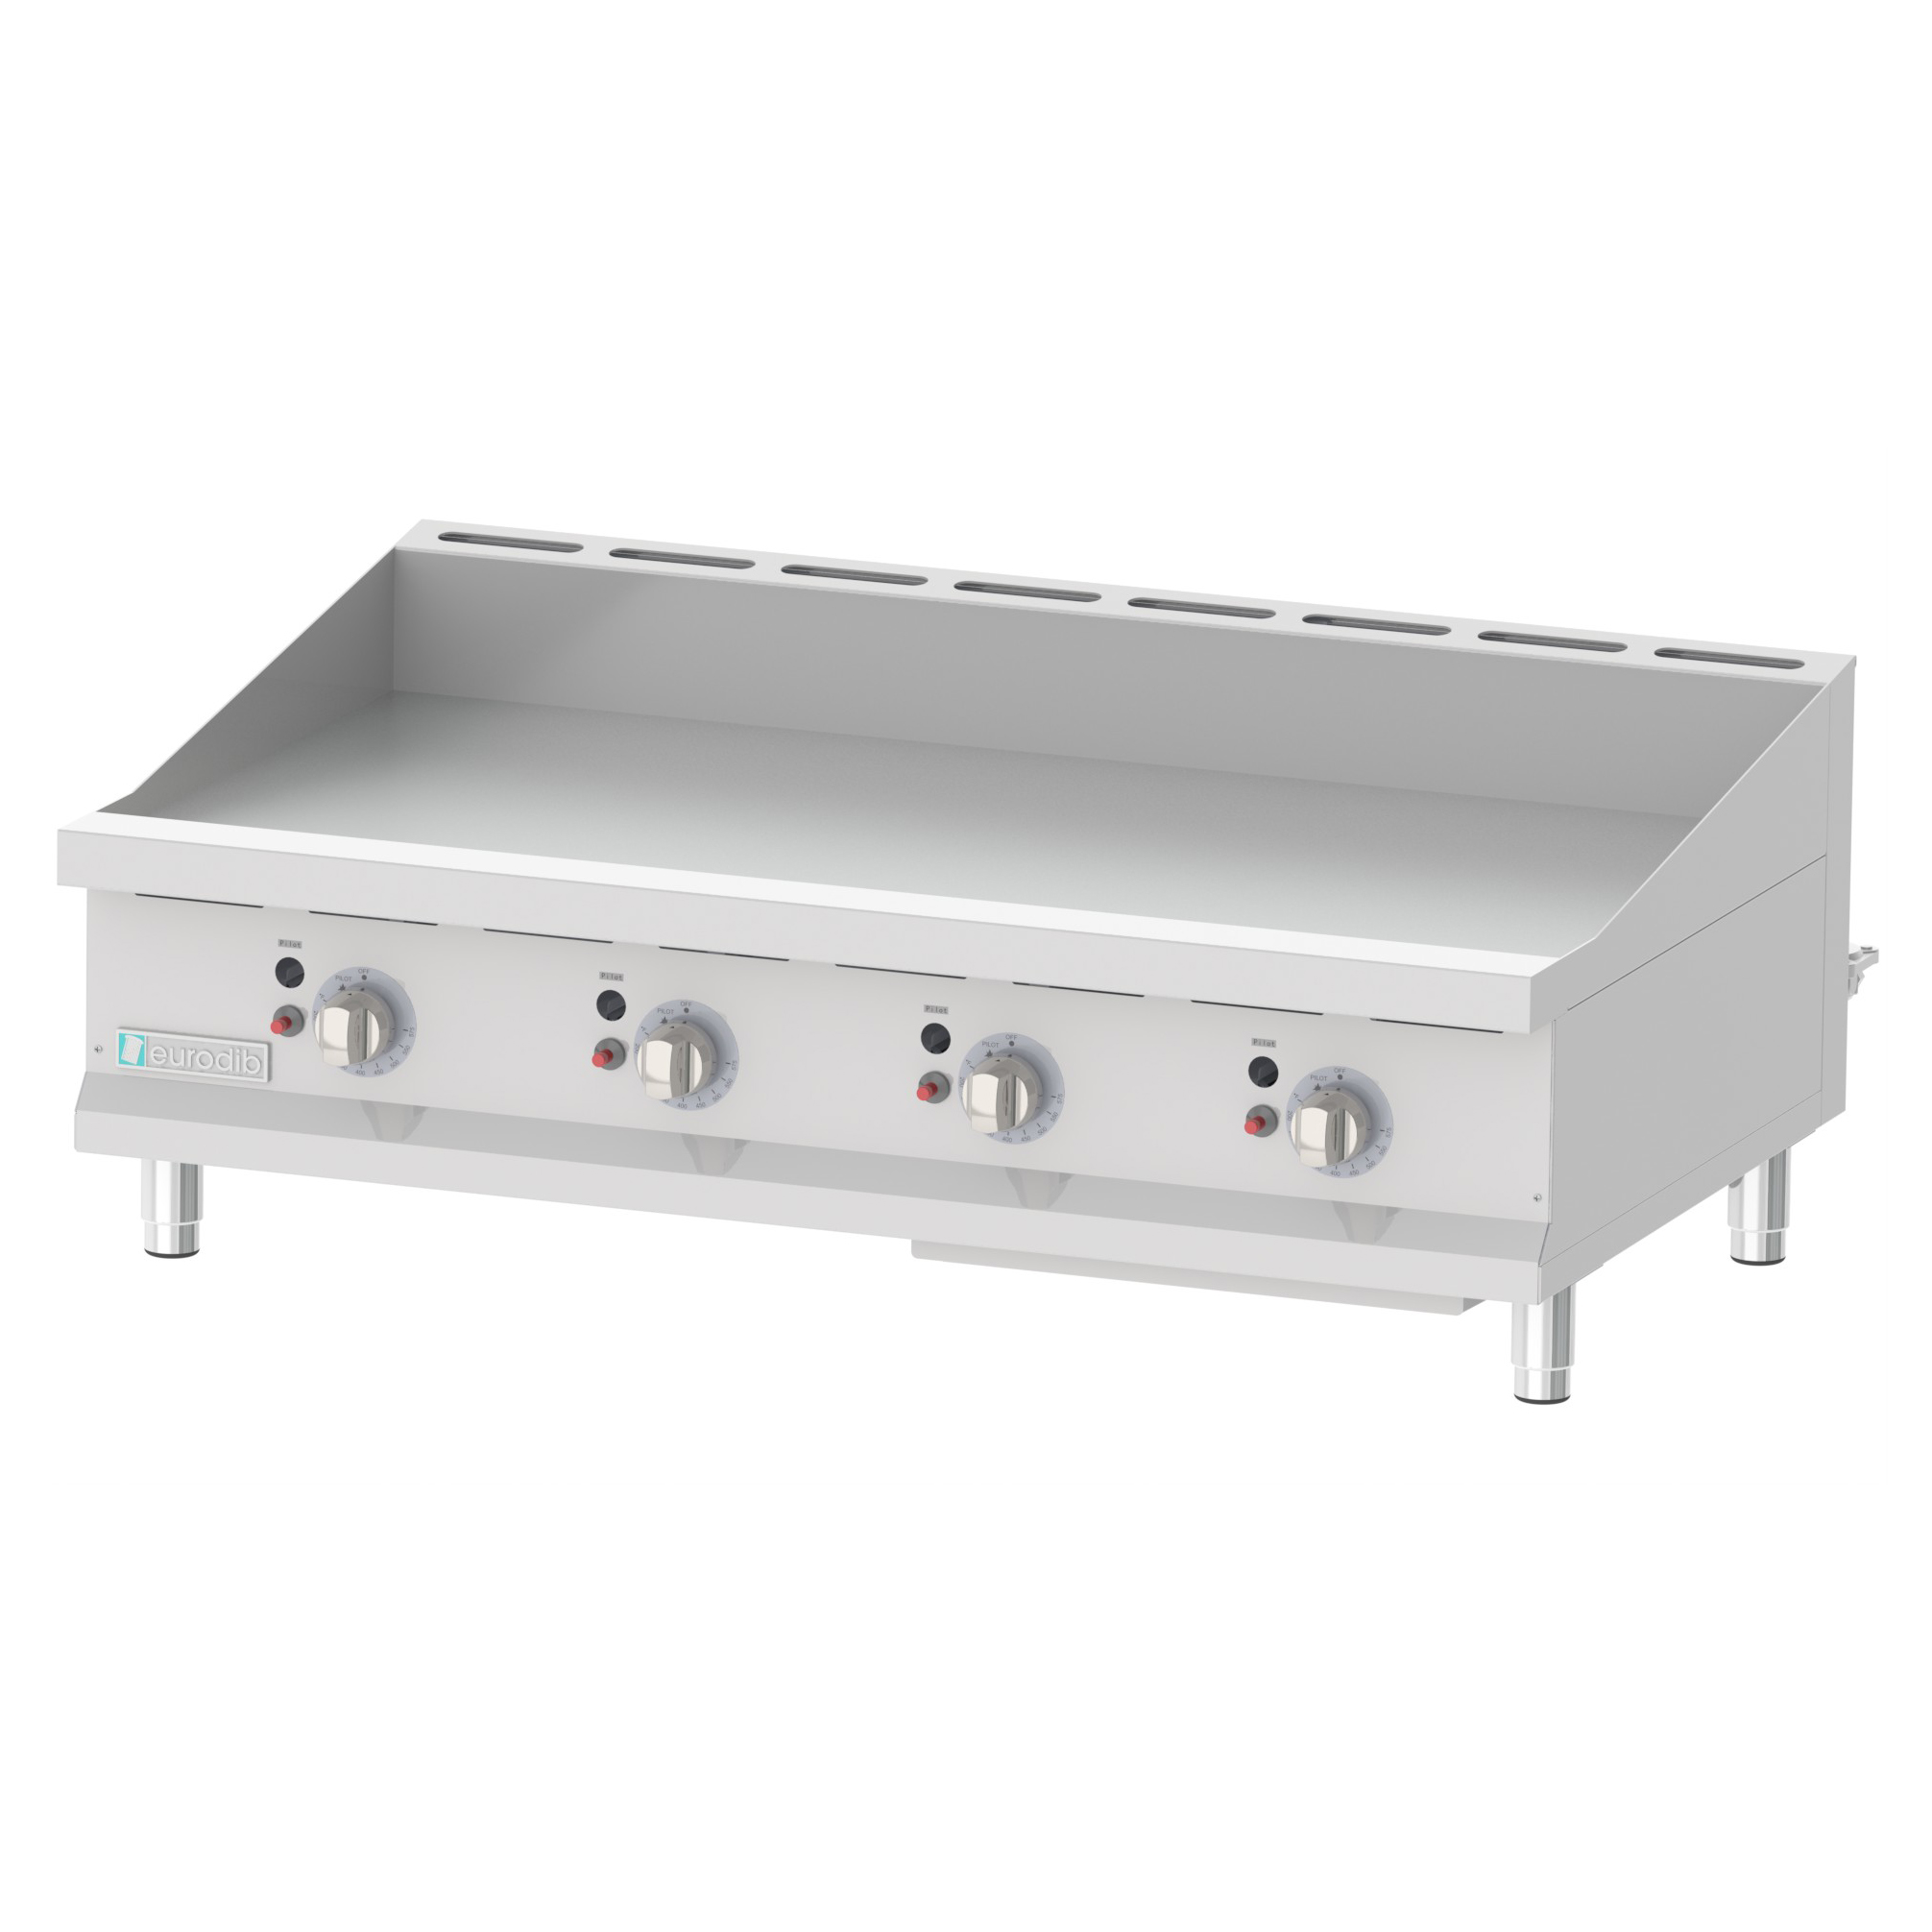 Eurodib USA T-G48T griddle, gas, countertop